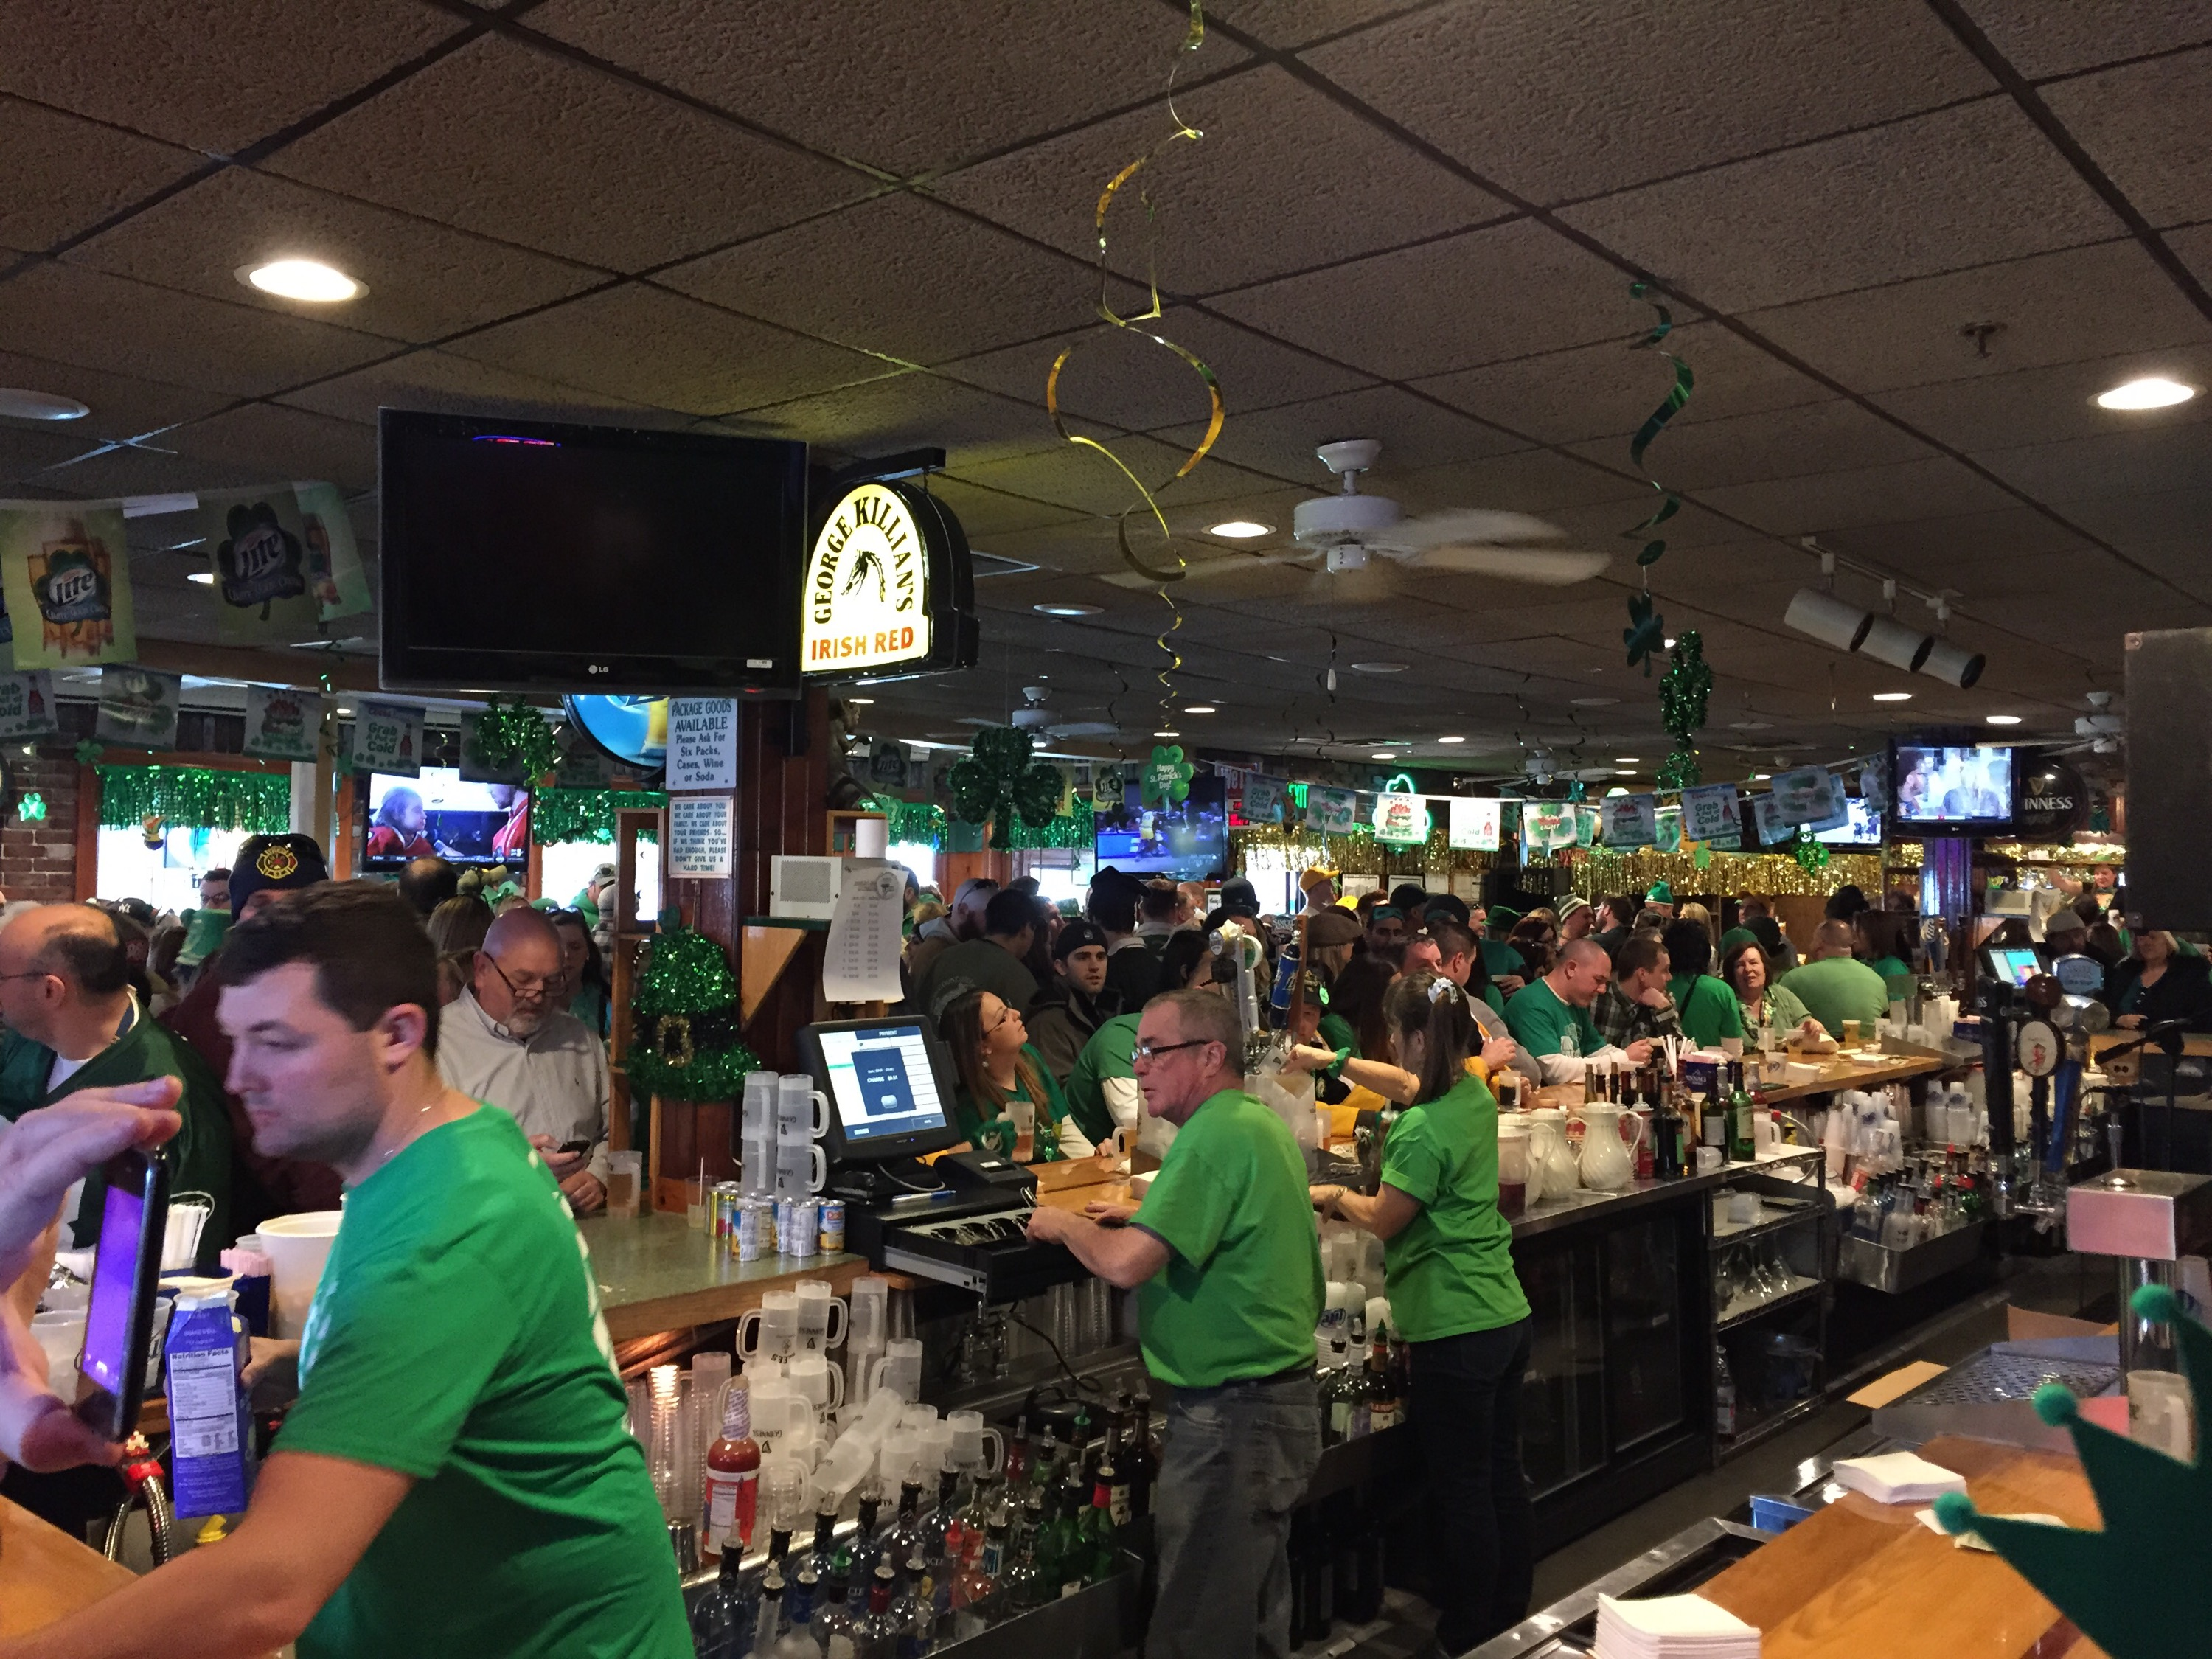 Klee's, Seaside Heights, N.J., during the Ocean County St. Patrick's Day Parade. (Photo: Daniel Nee)